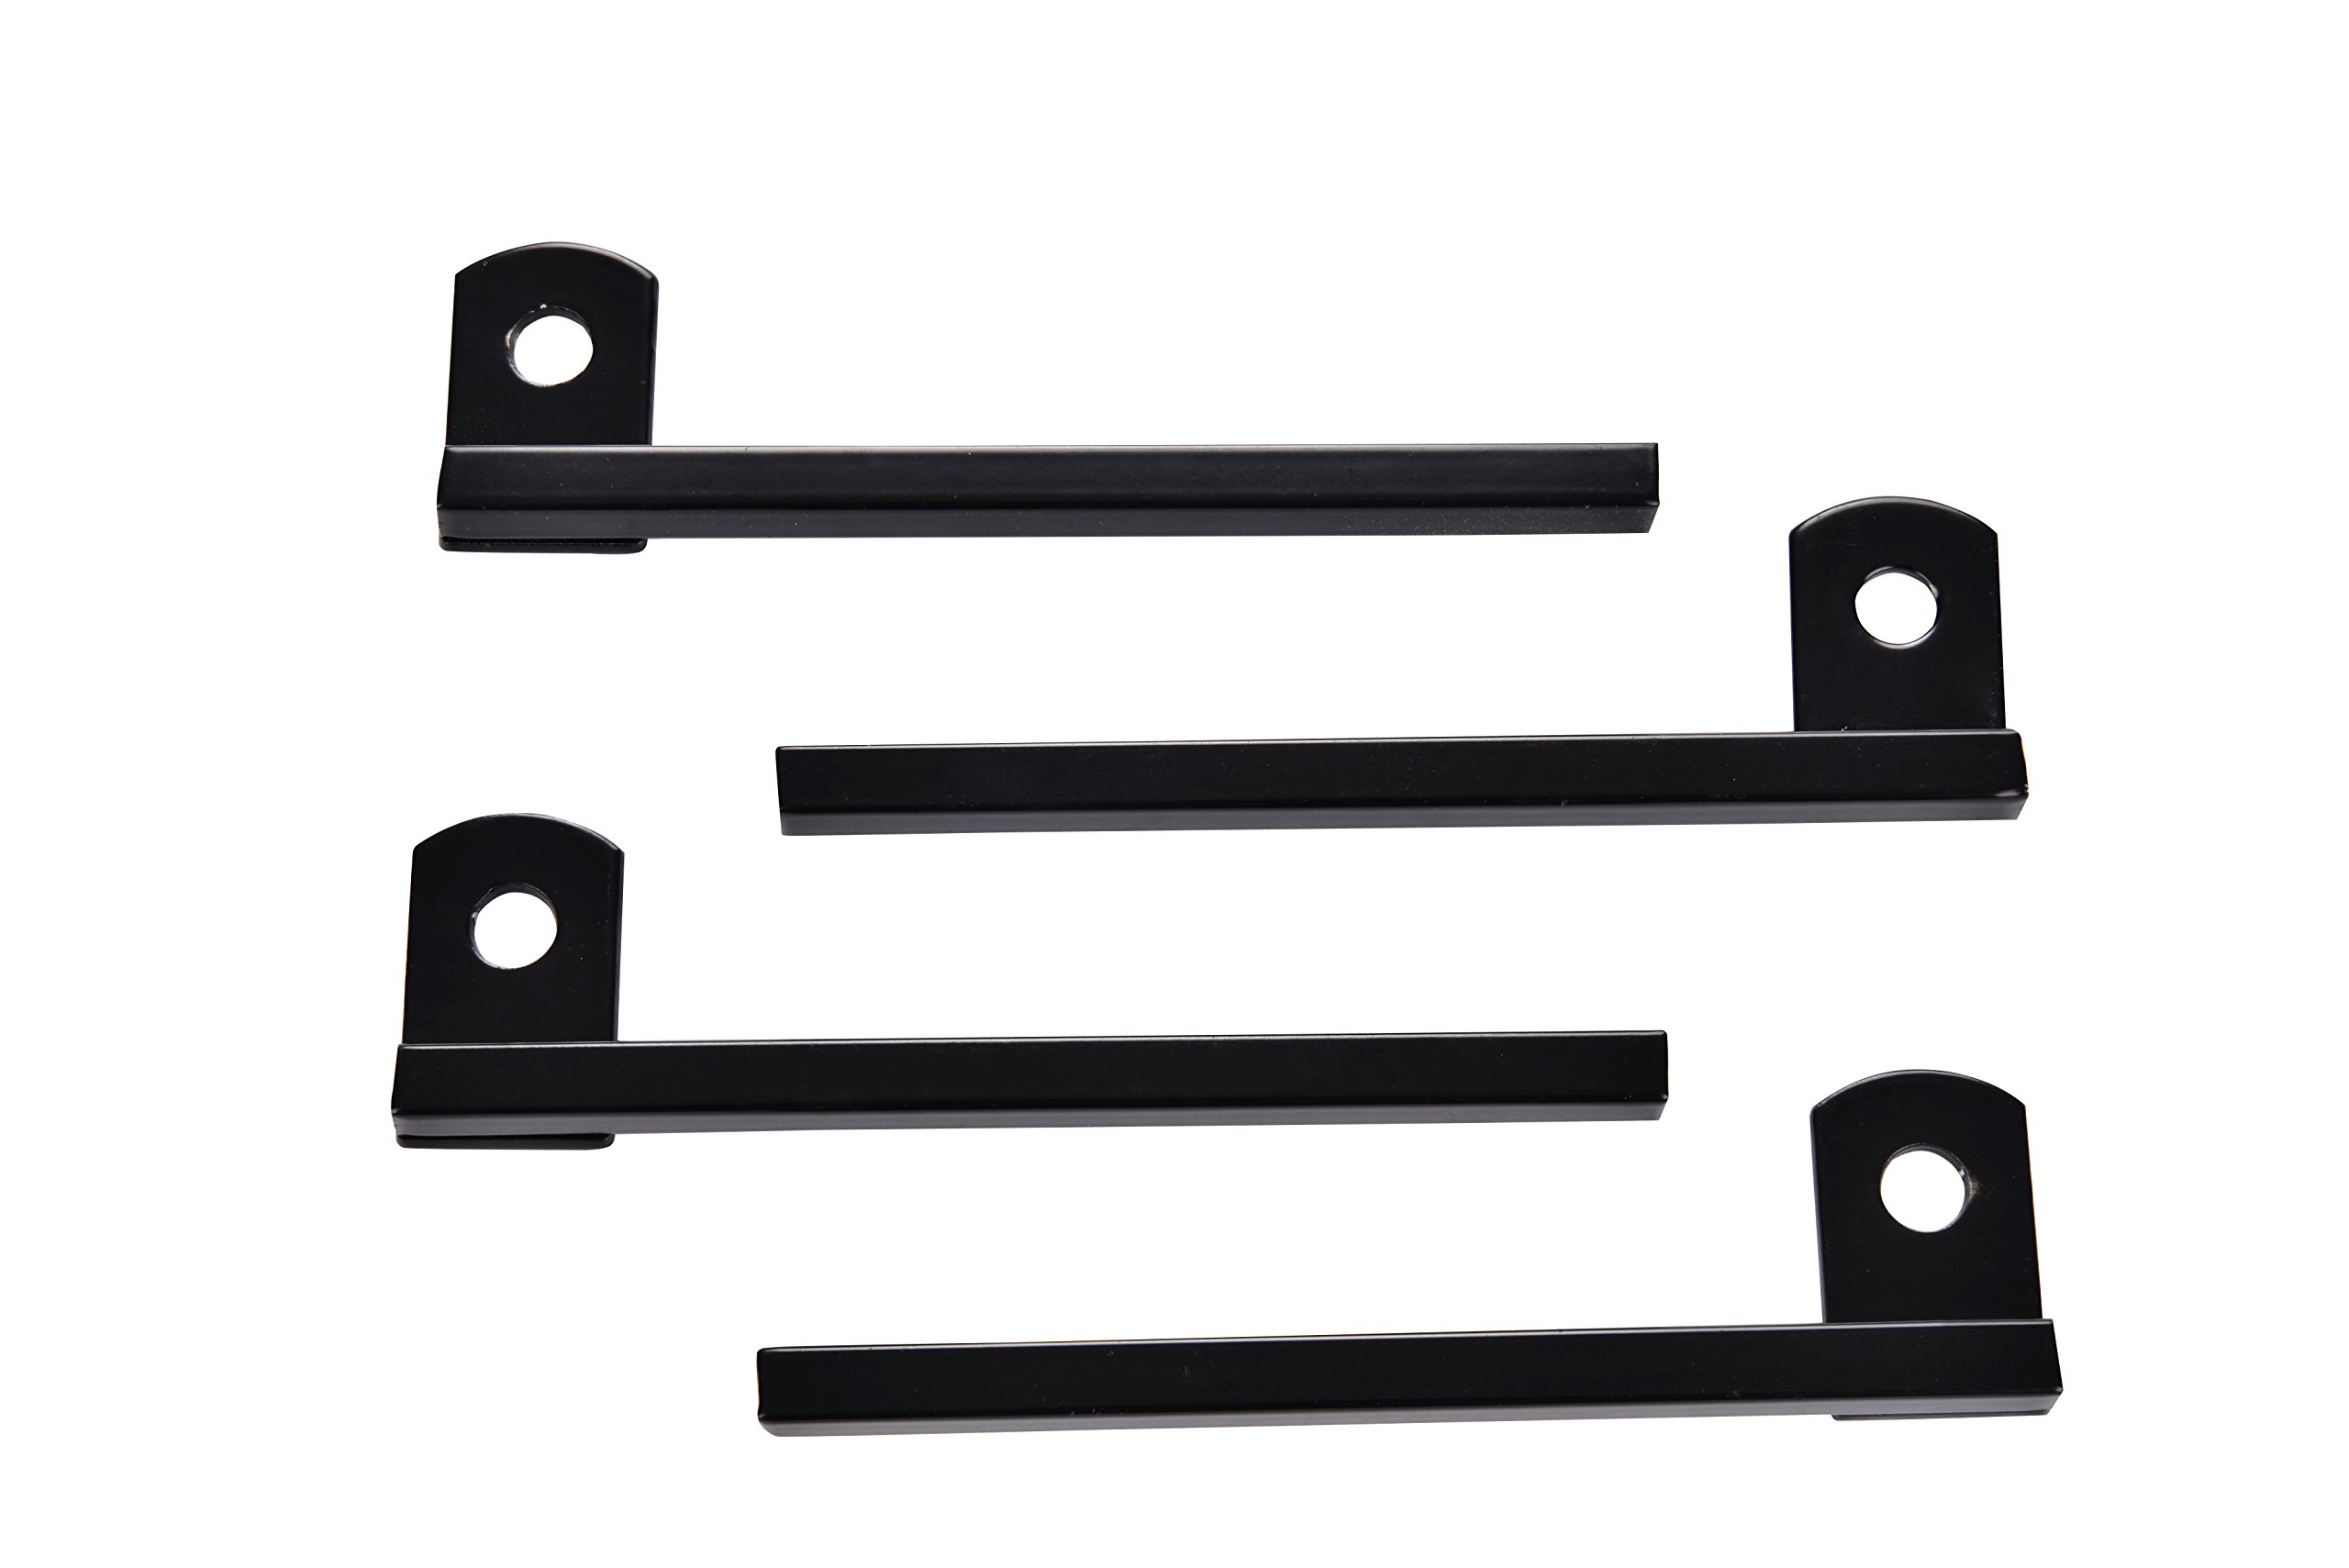 Grisham Flush-Mount Window Bar Brackets (4-Pack)